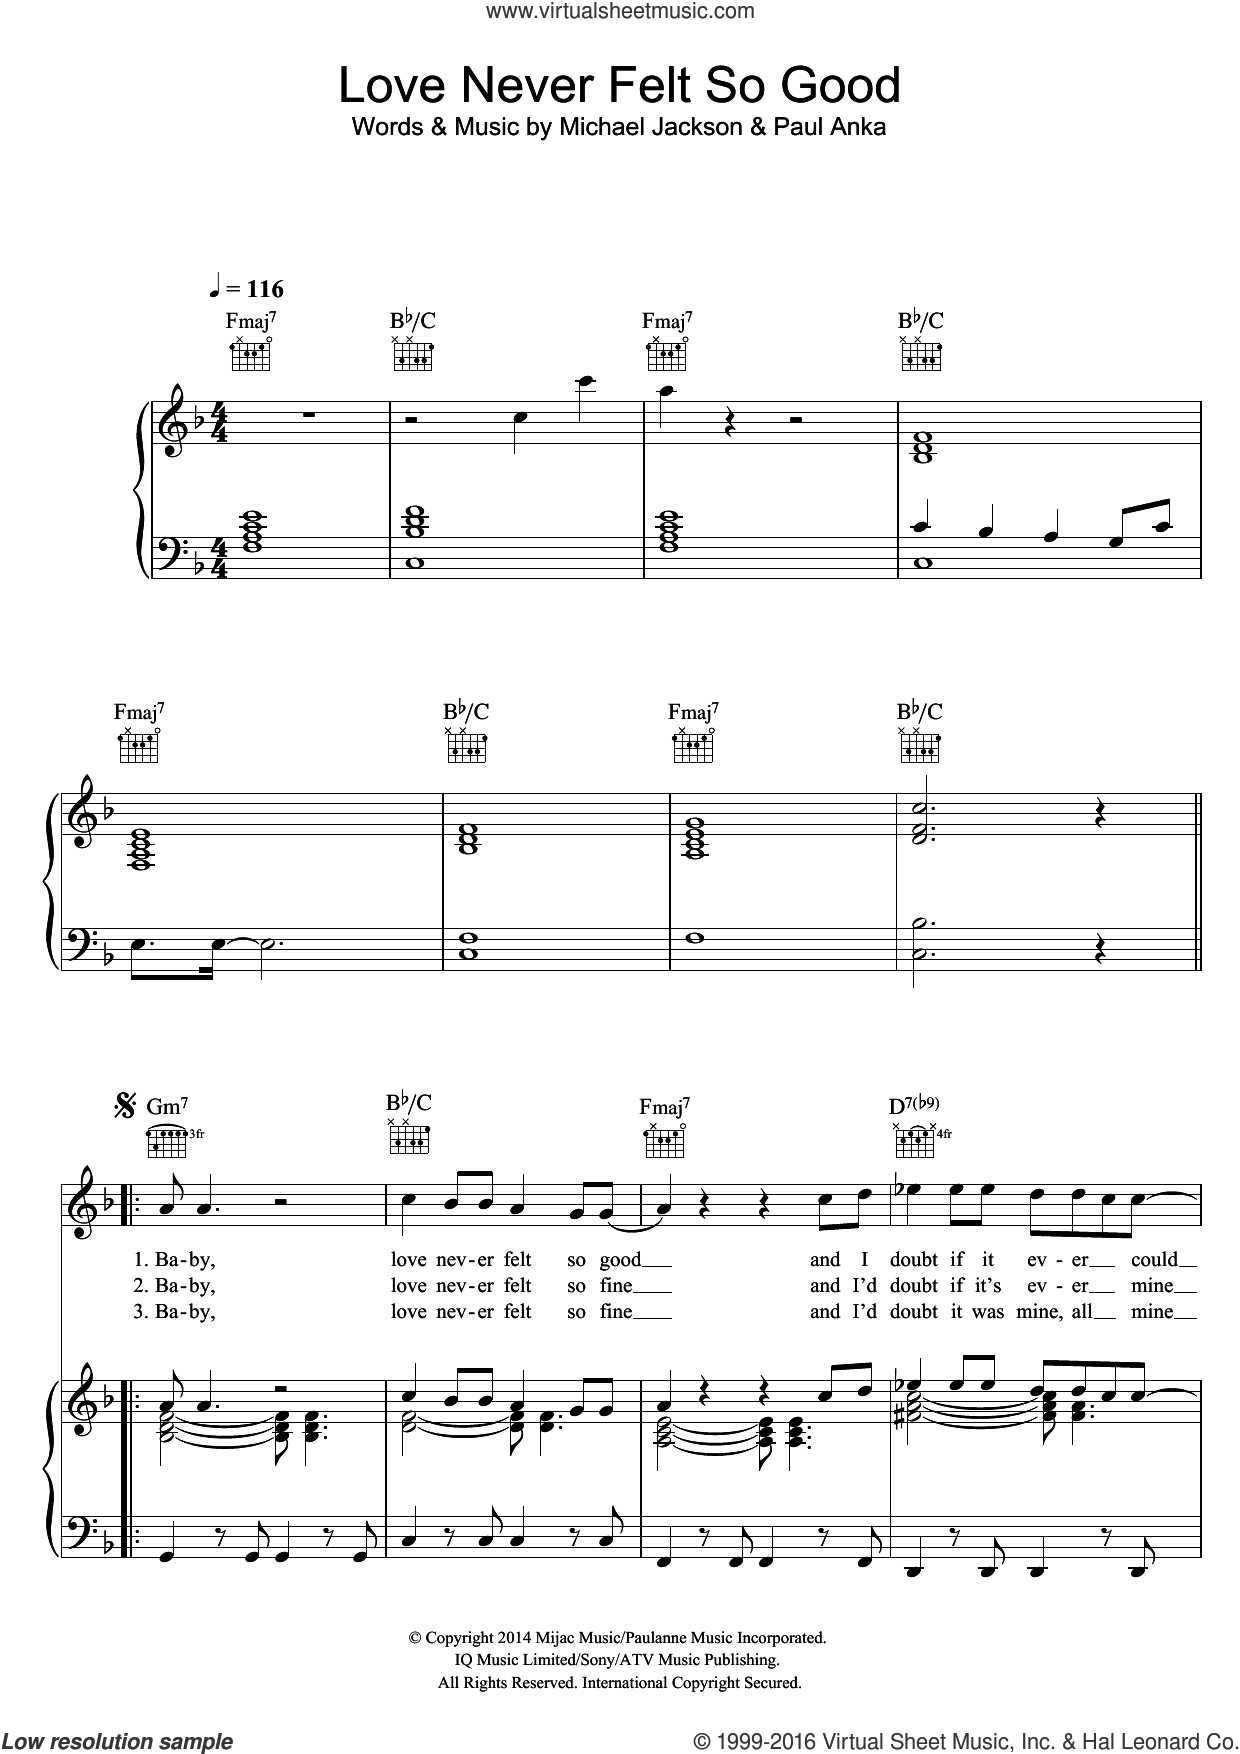 Love Never Felt So Good sheet music for voice, piano or guitar by Paul Anka and Michael Jackson. Score Image Preview.